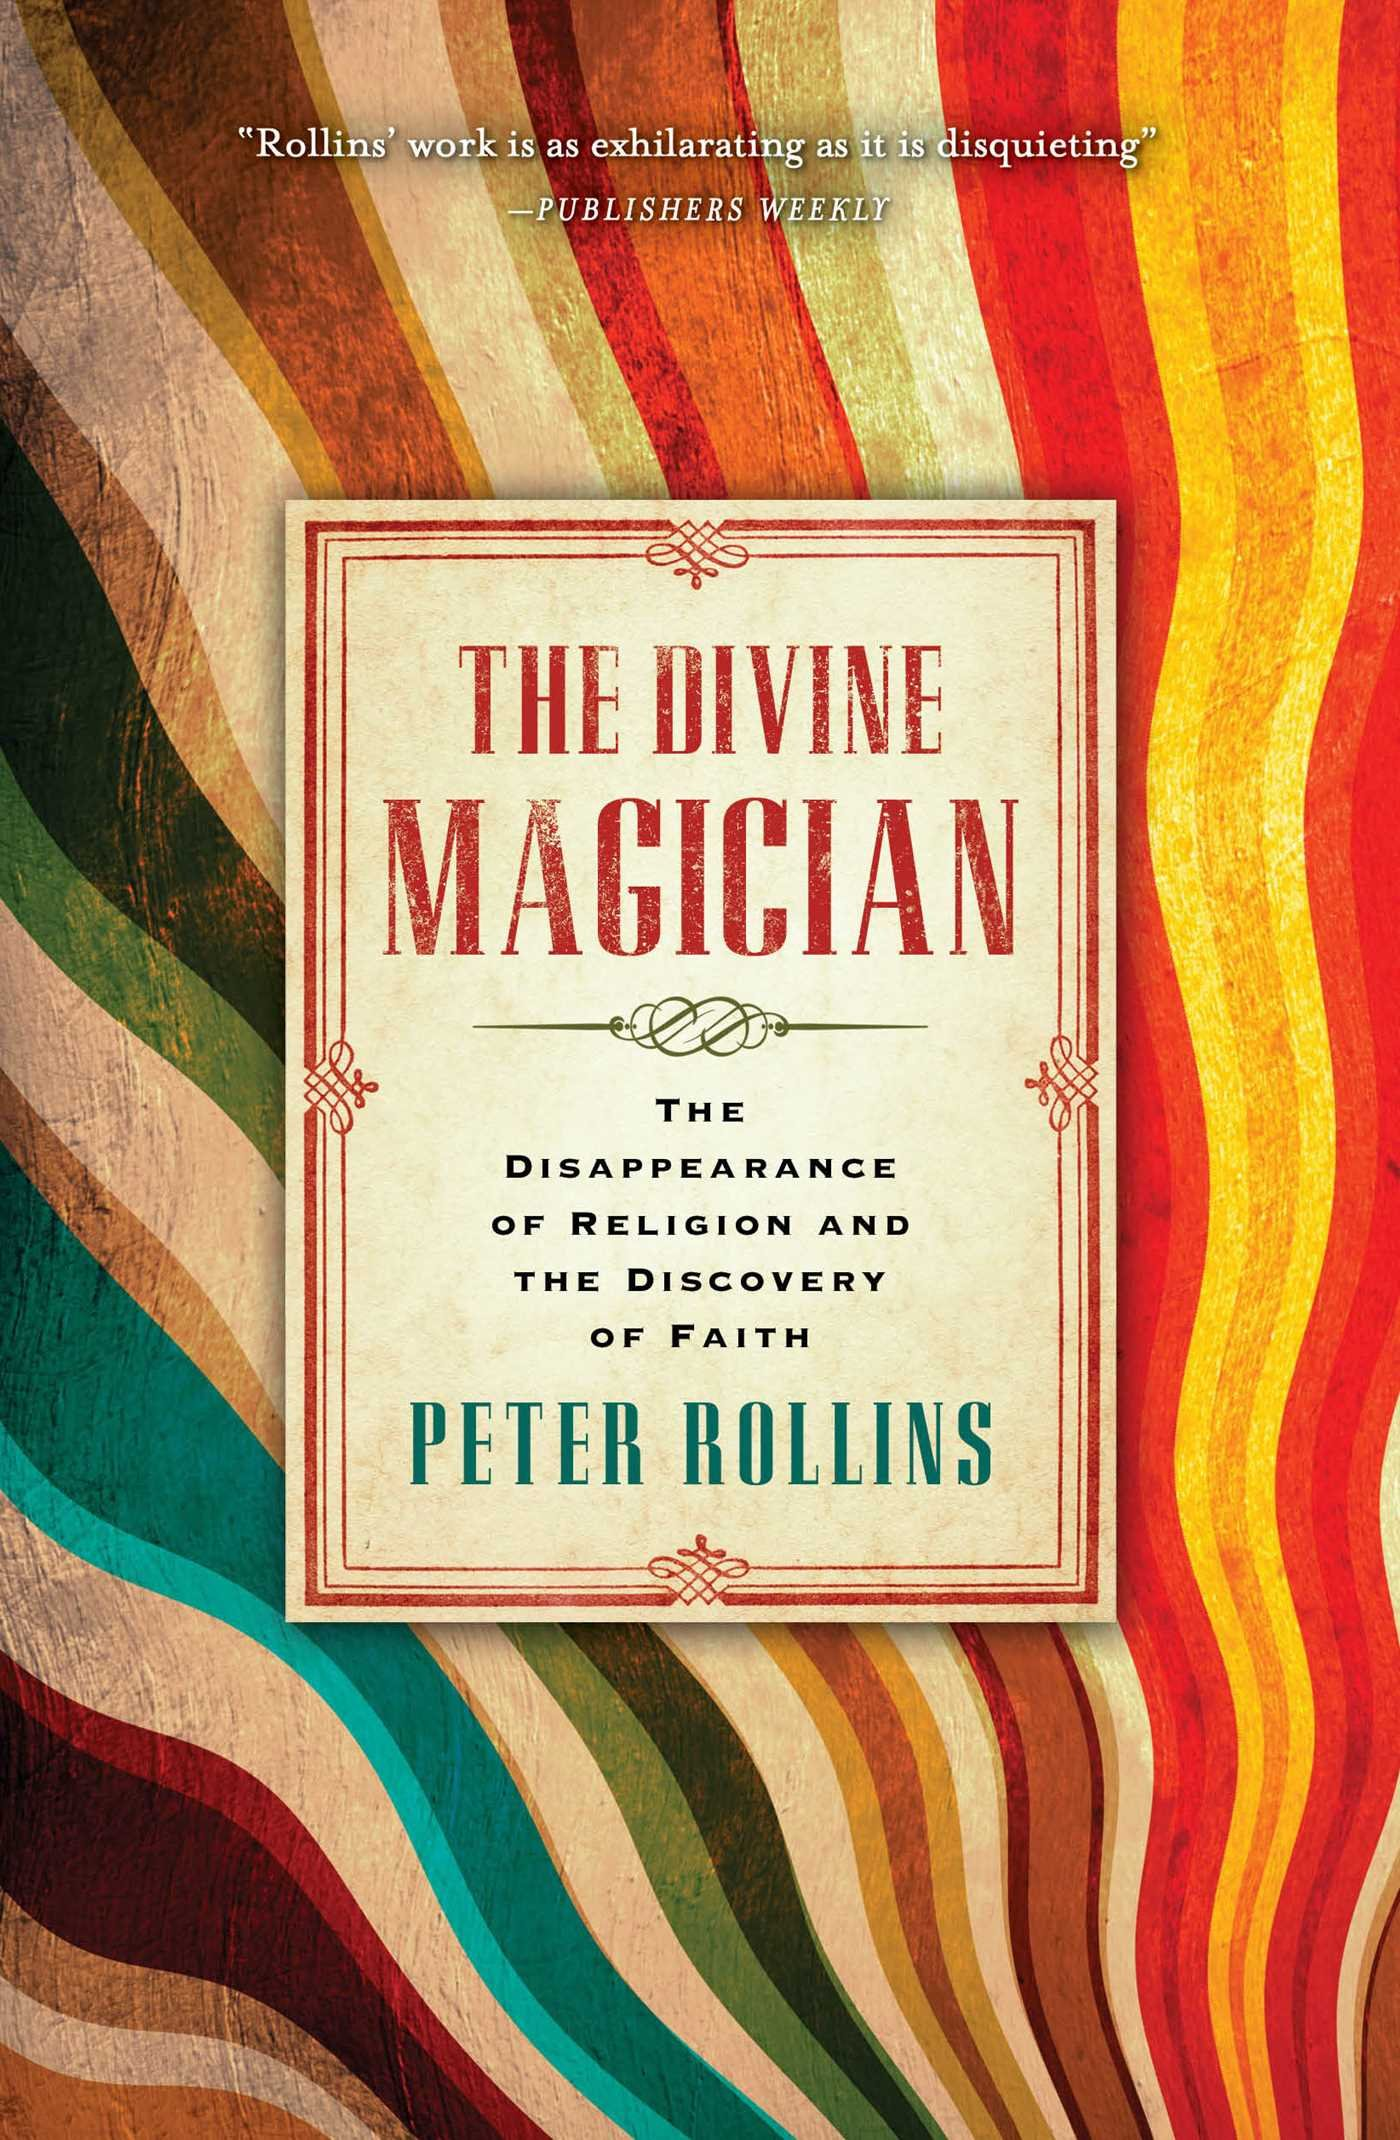 Book review: The Divine Magician